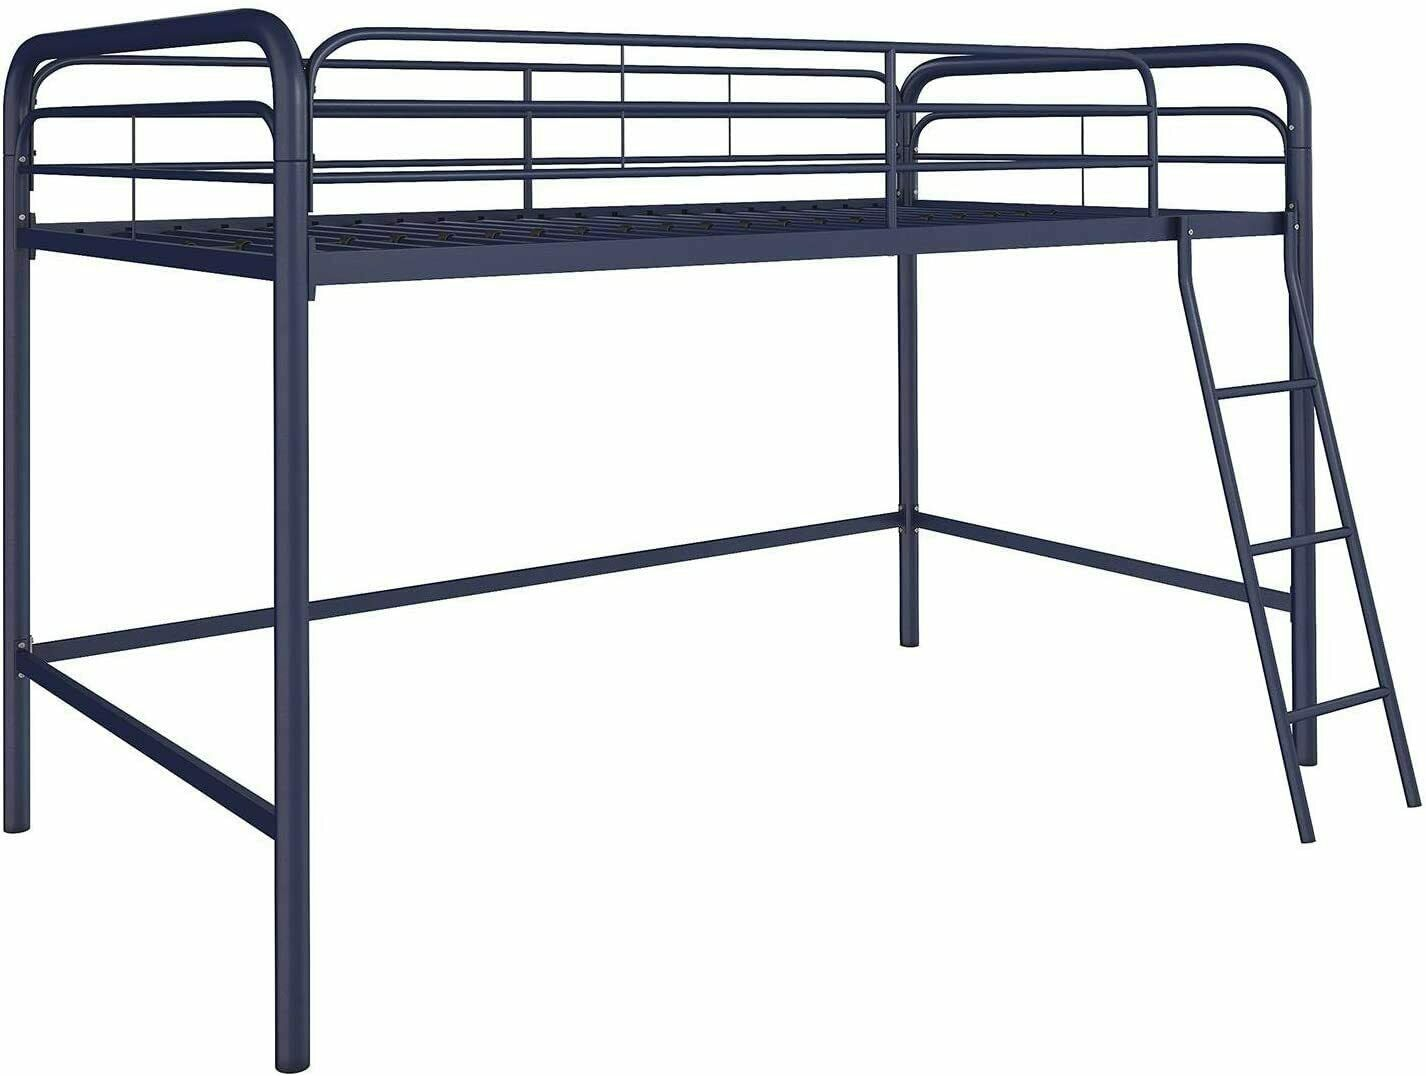 Picture of: Twin Size Metal Bunk Bed Teen Bedroom Furniture Blue Color Mattresses Available For Sale Online Ebay